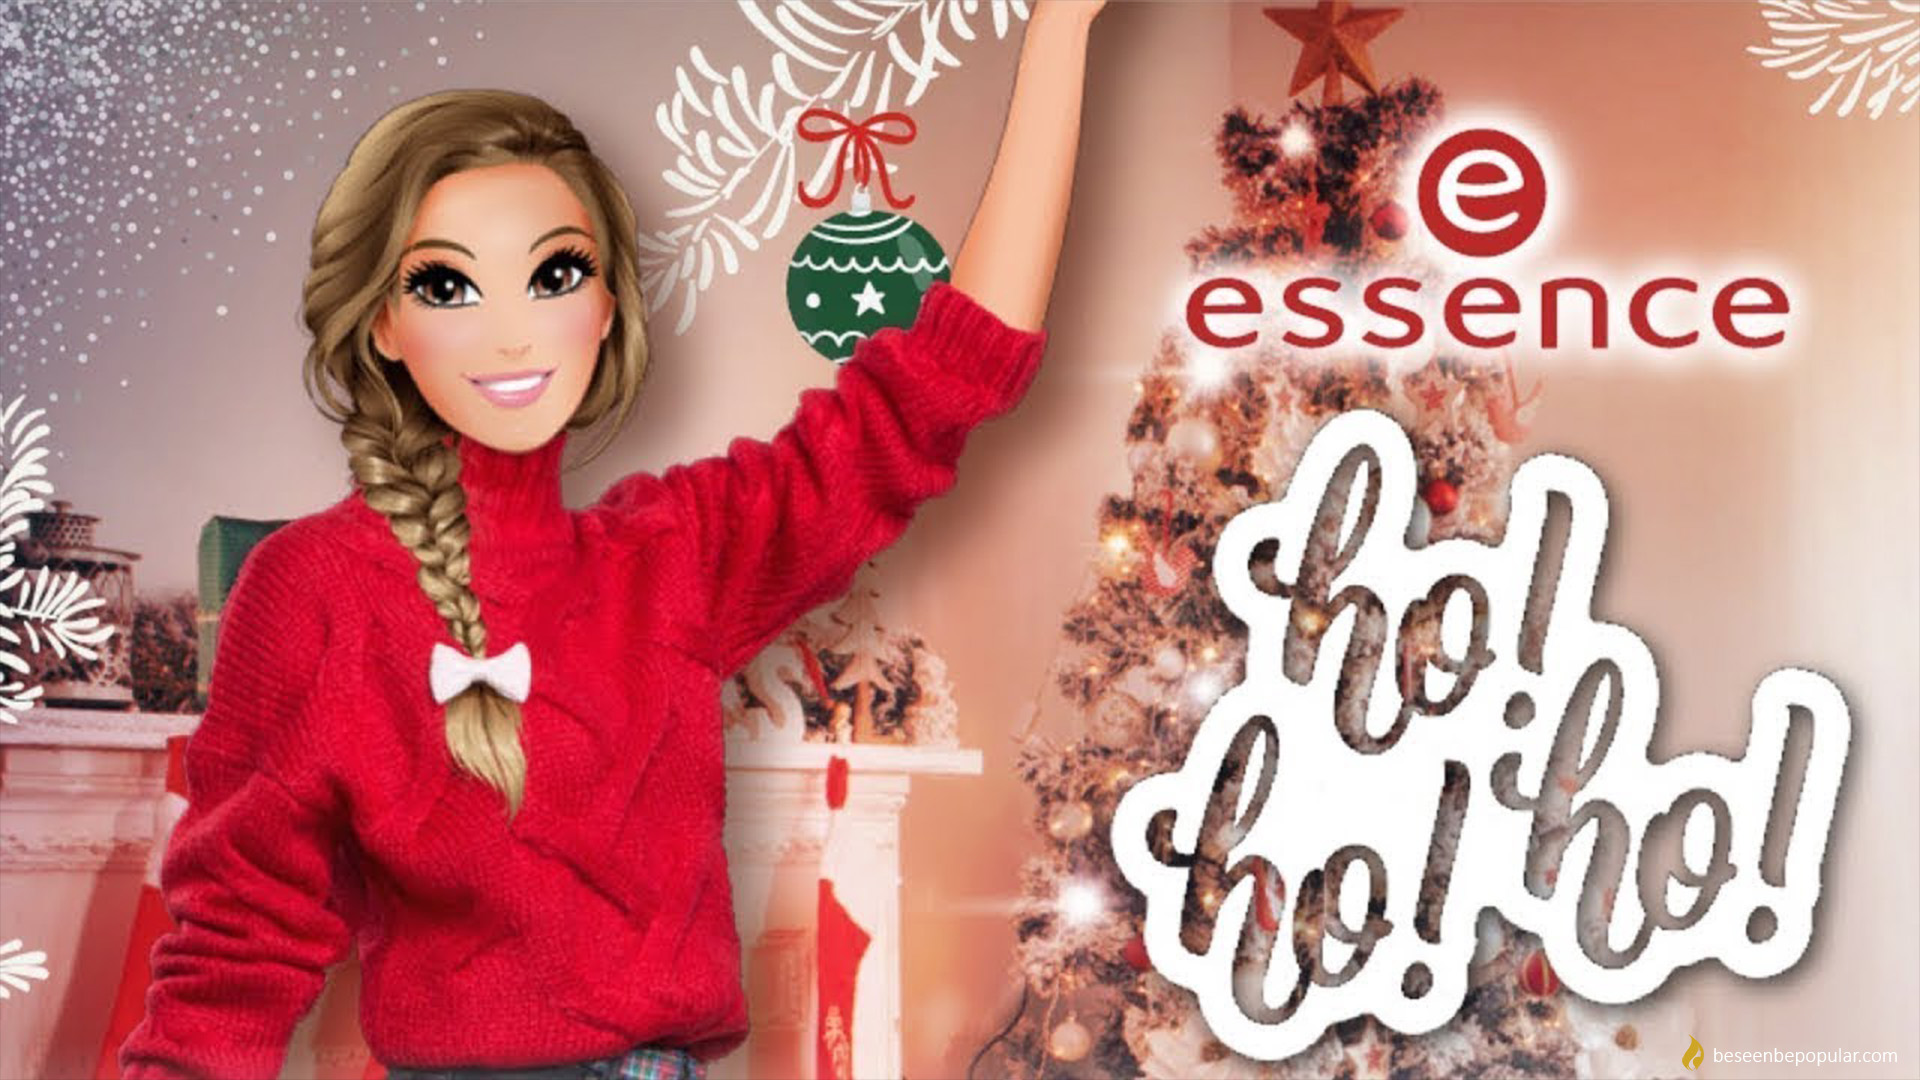 essence new holiday collection